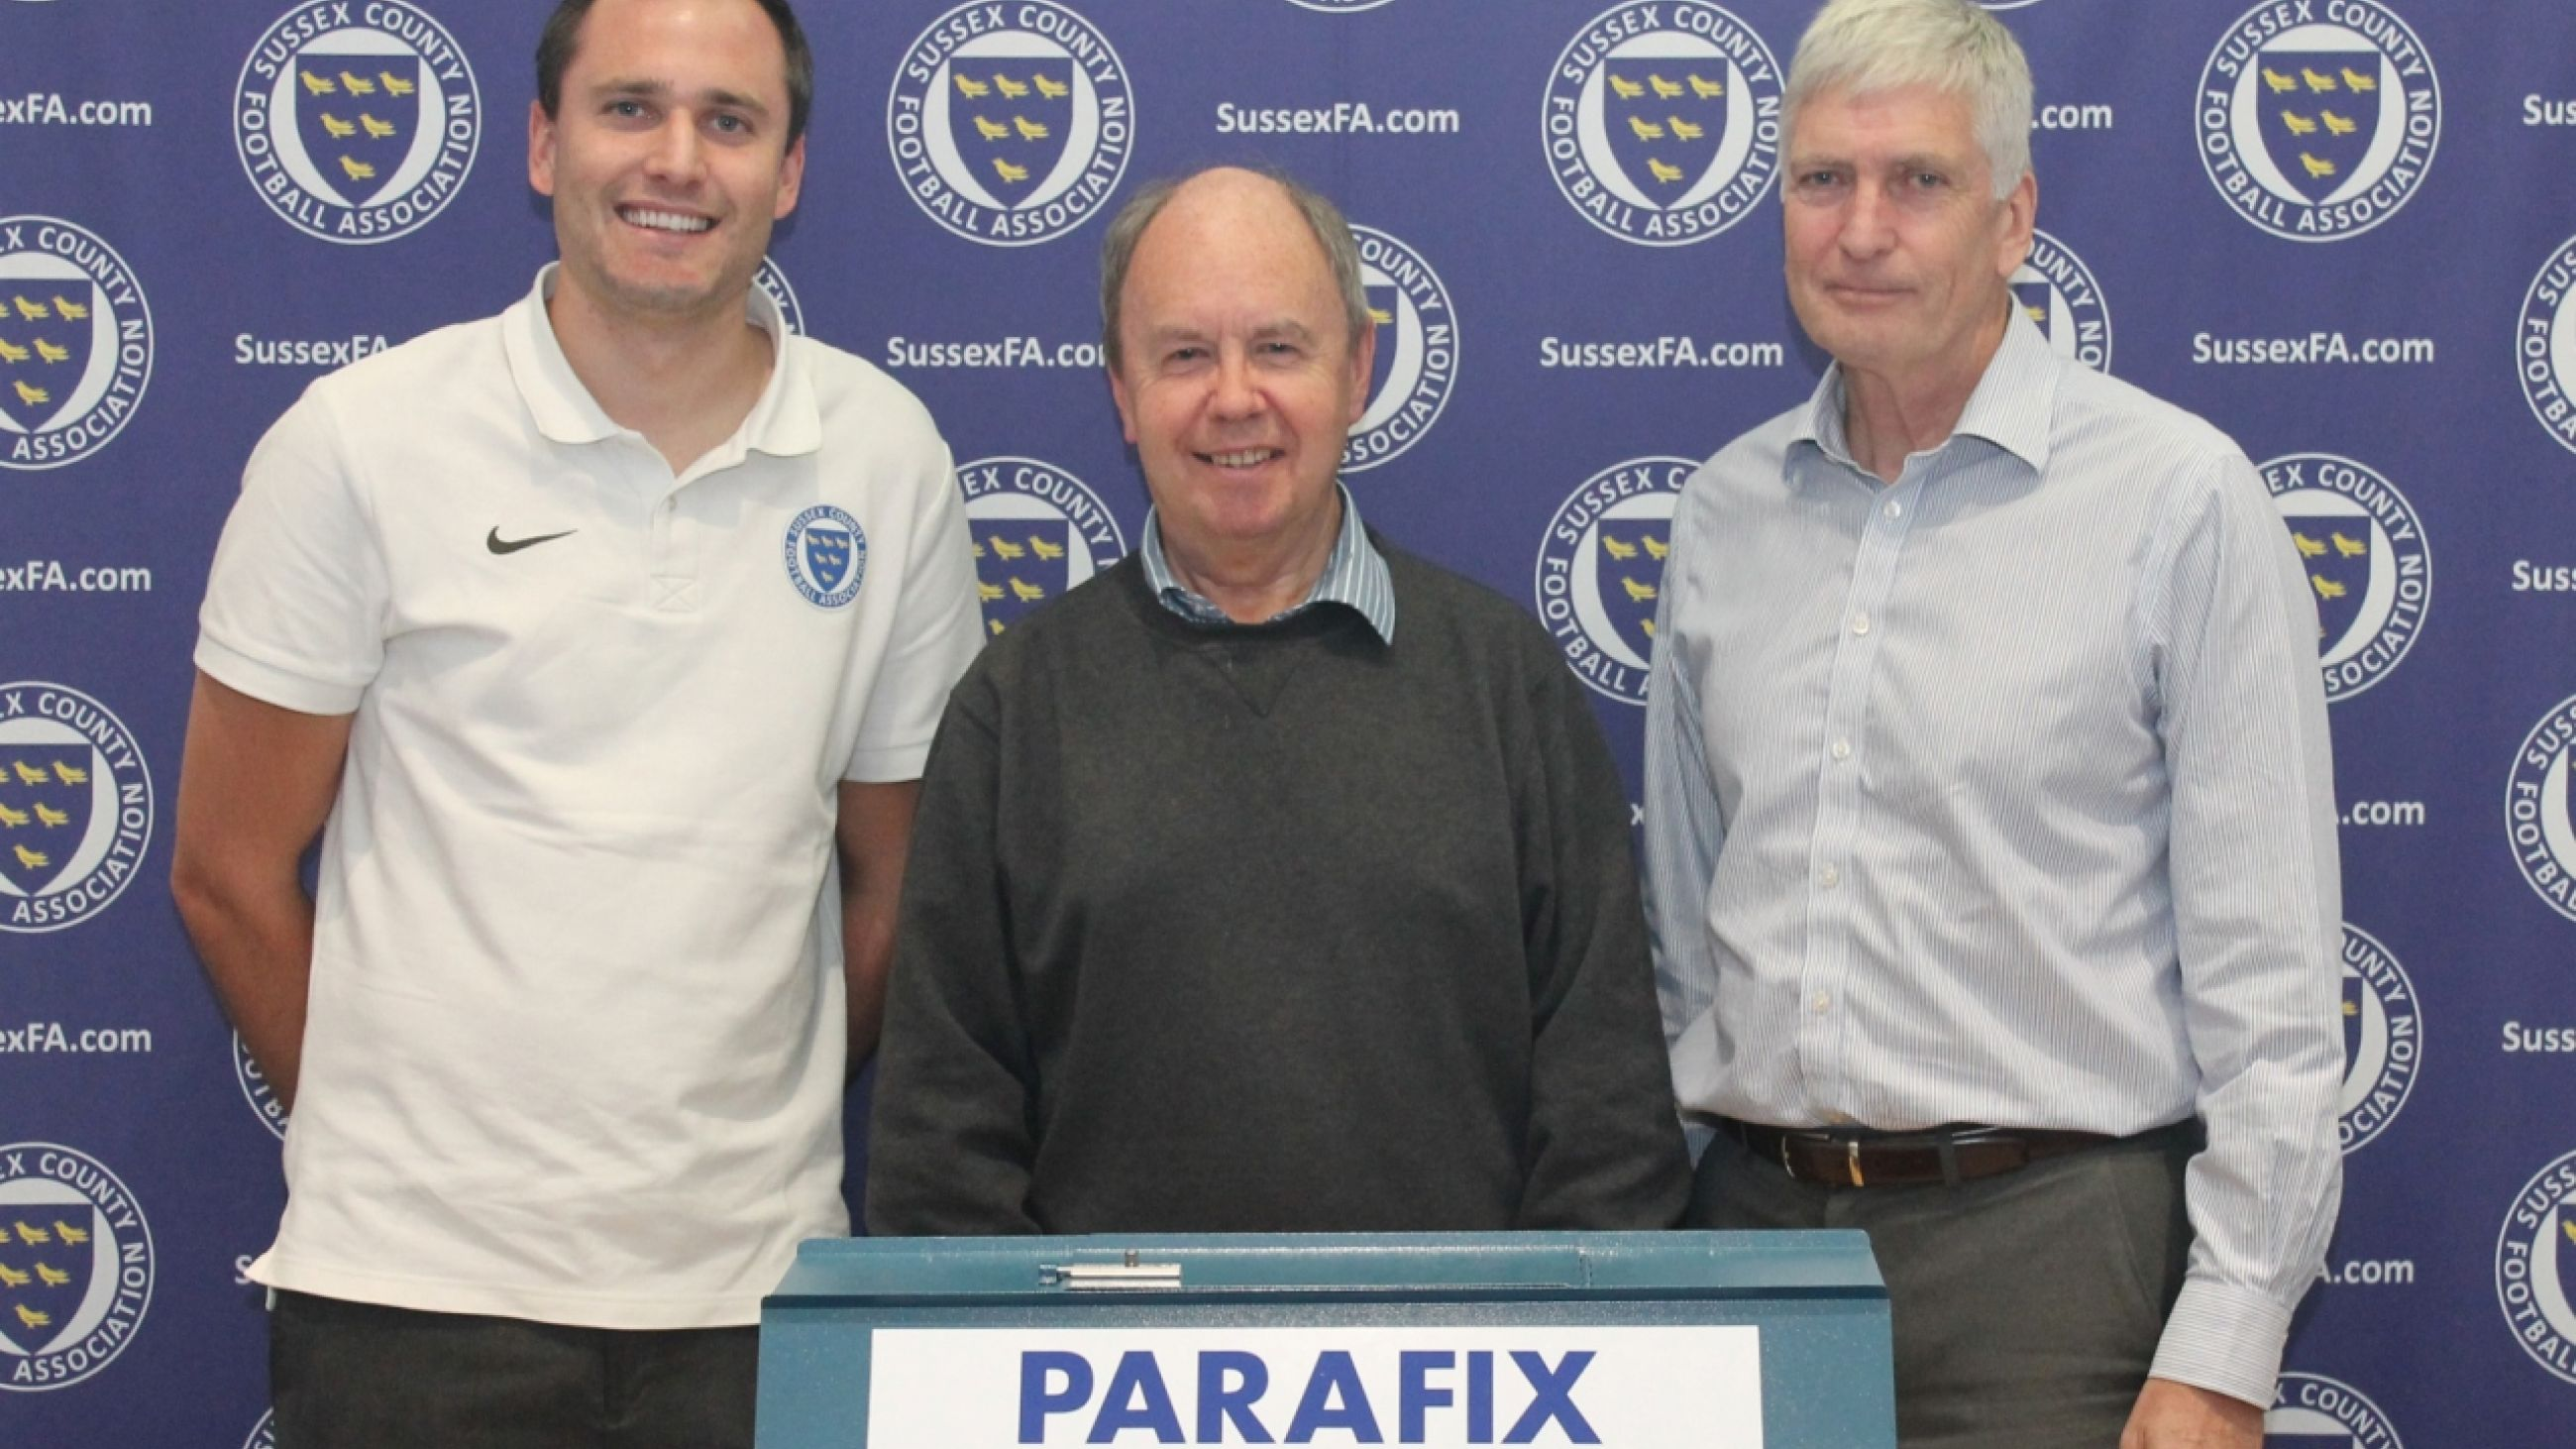 Parafix Sussex Senior Challenge Cup 2nd Round Draw 2016